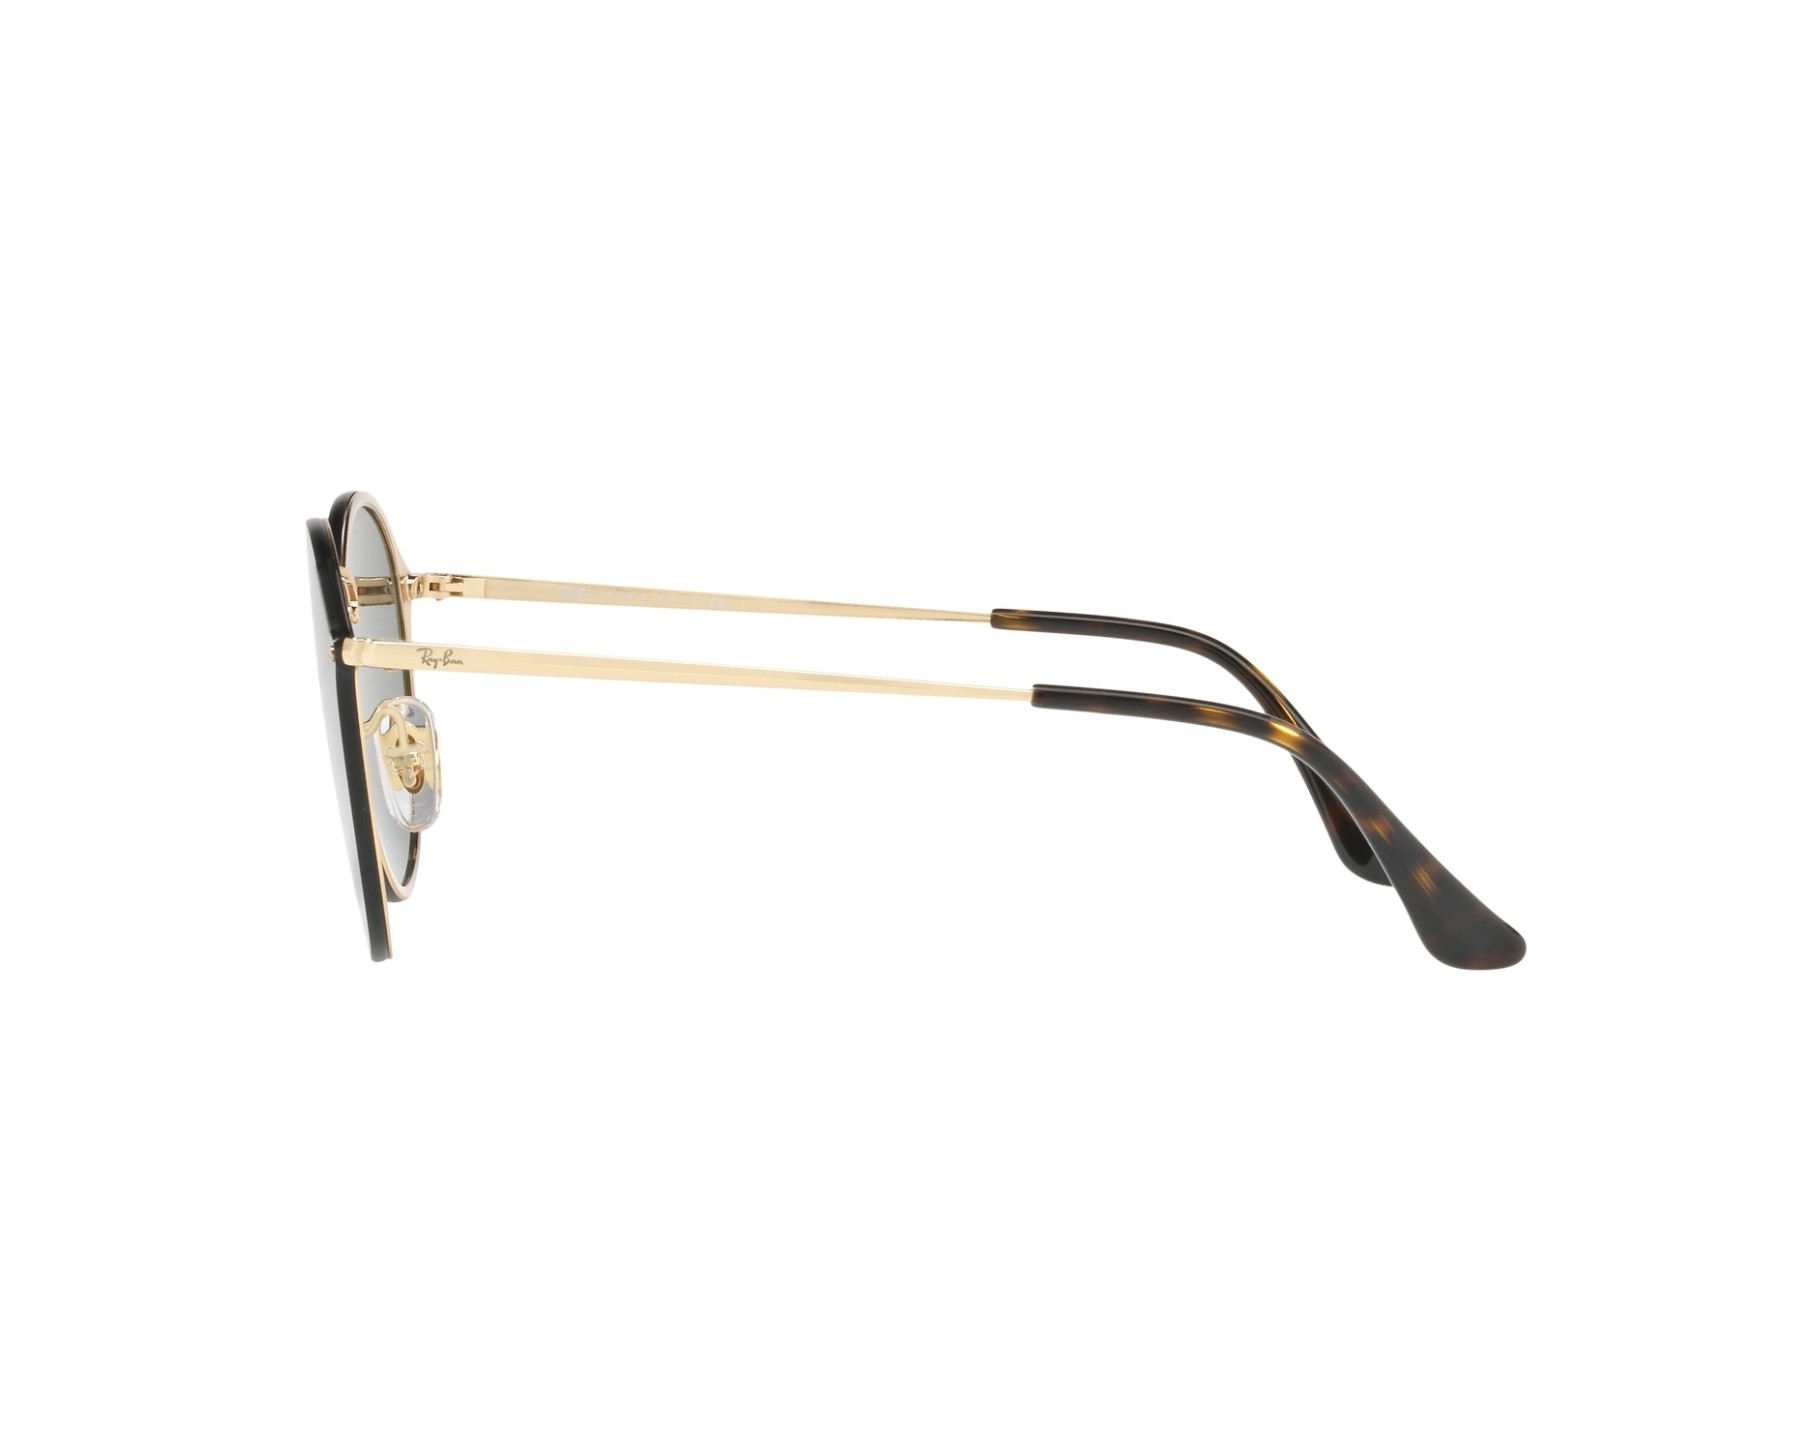 5333a4ab50069 Sunglasses Ray-Ban RB-3574-N 001 71 59-14 Gold